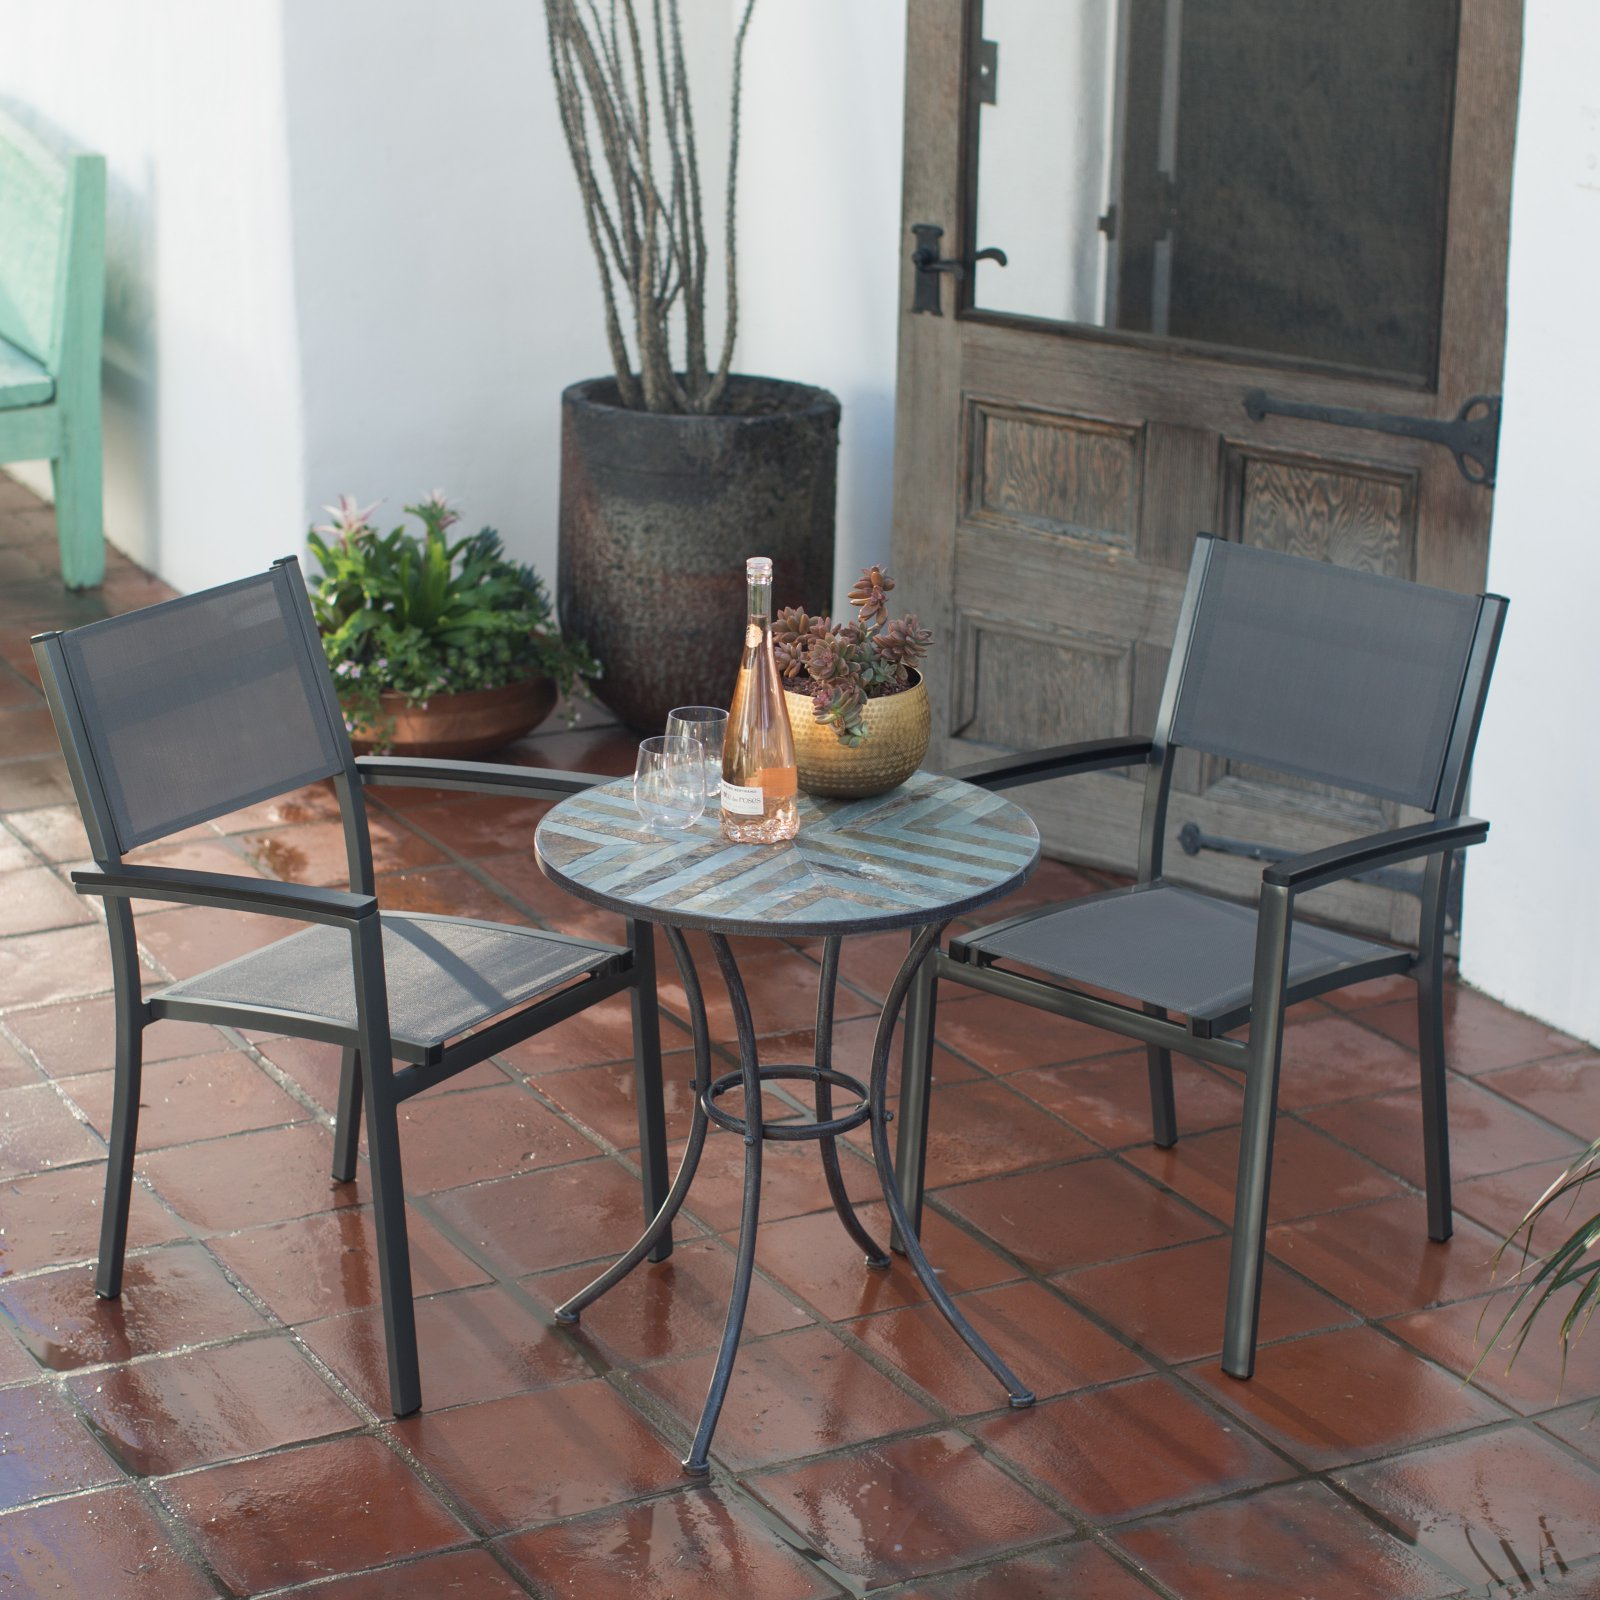 Belham Living Whitney Sling Chair and Stone Table Patio Bistro Set by